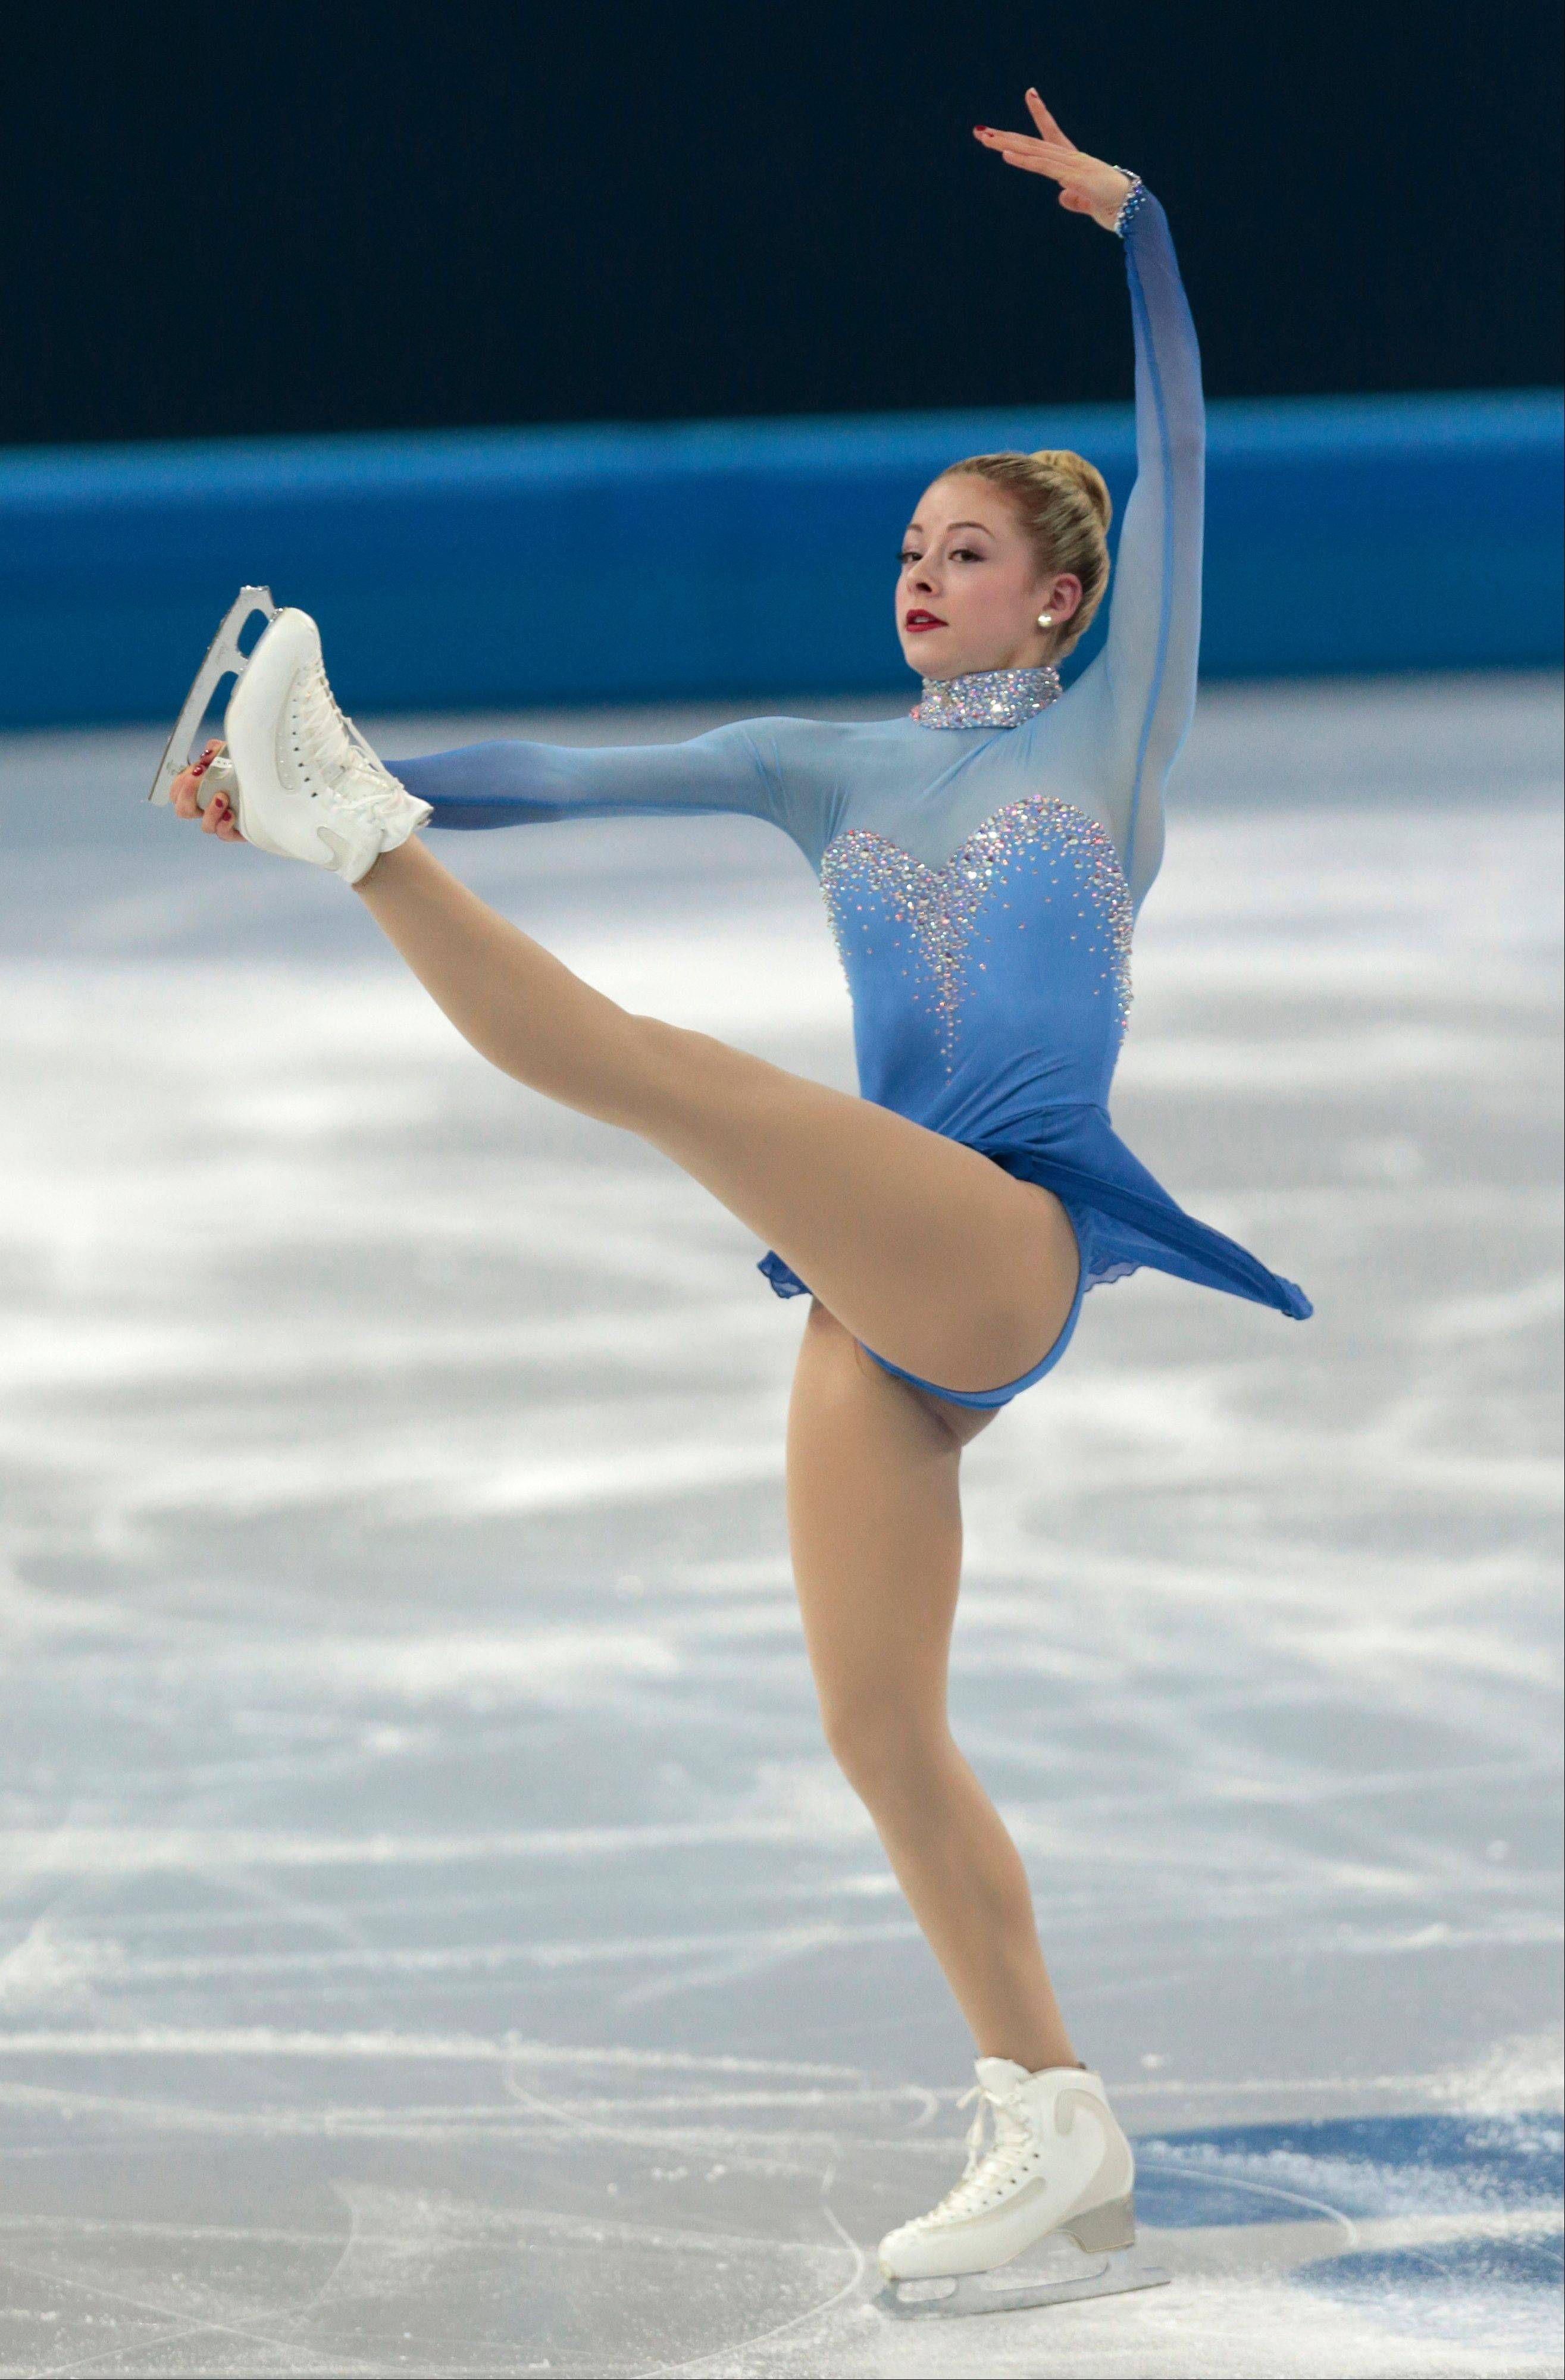 Gracie Gold of the United States competes in the women's team free skate figure skating competition at the Iceberg Skating Palace during the 2014 Winter Olympics, Sunday, Feb. 9, 2014, in Sochi, Russia.